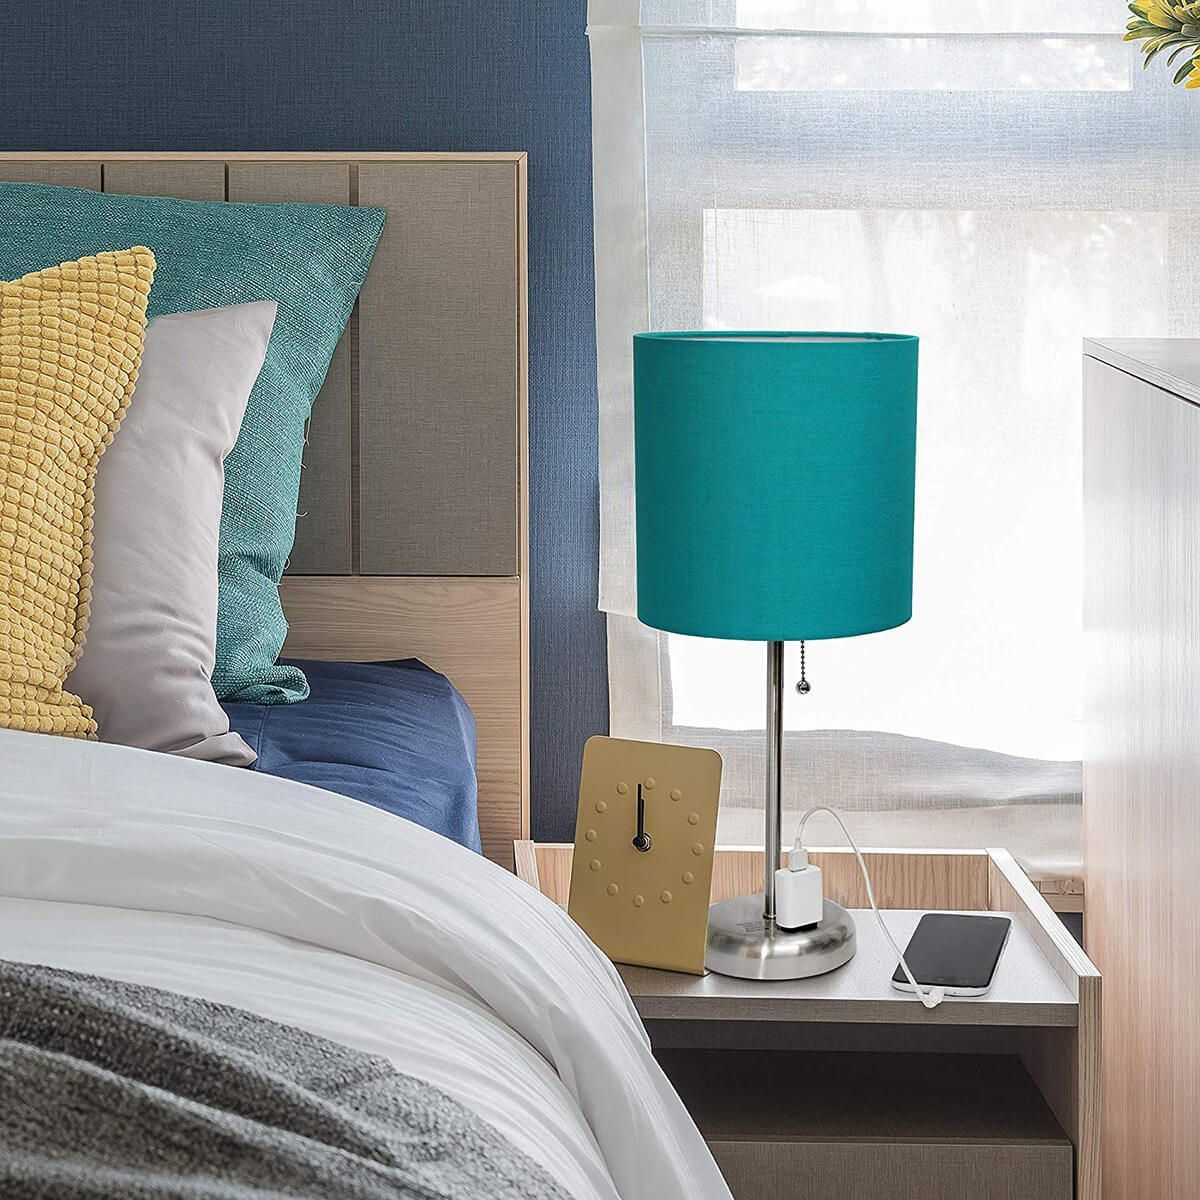 The 25 Best Bedside Table Lamps to Light Up Your Evenings